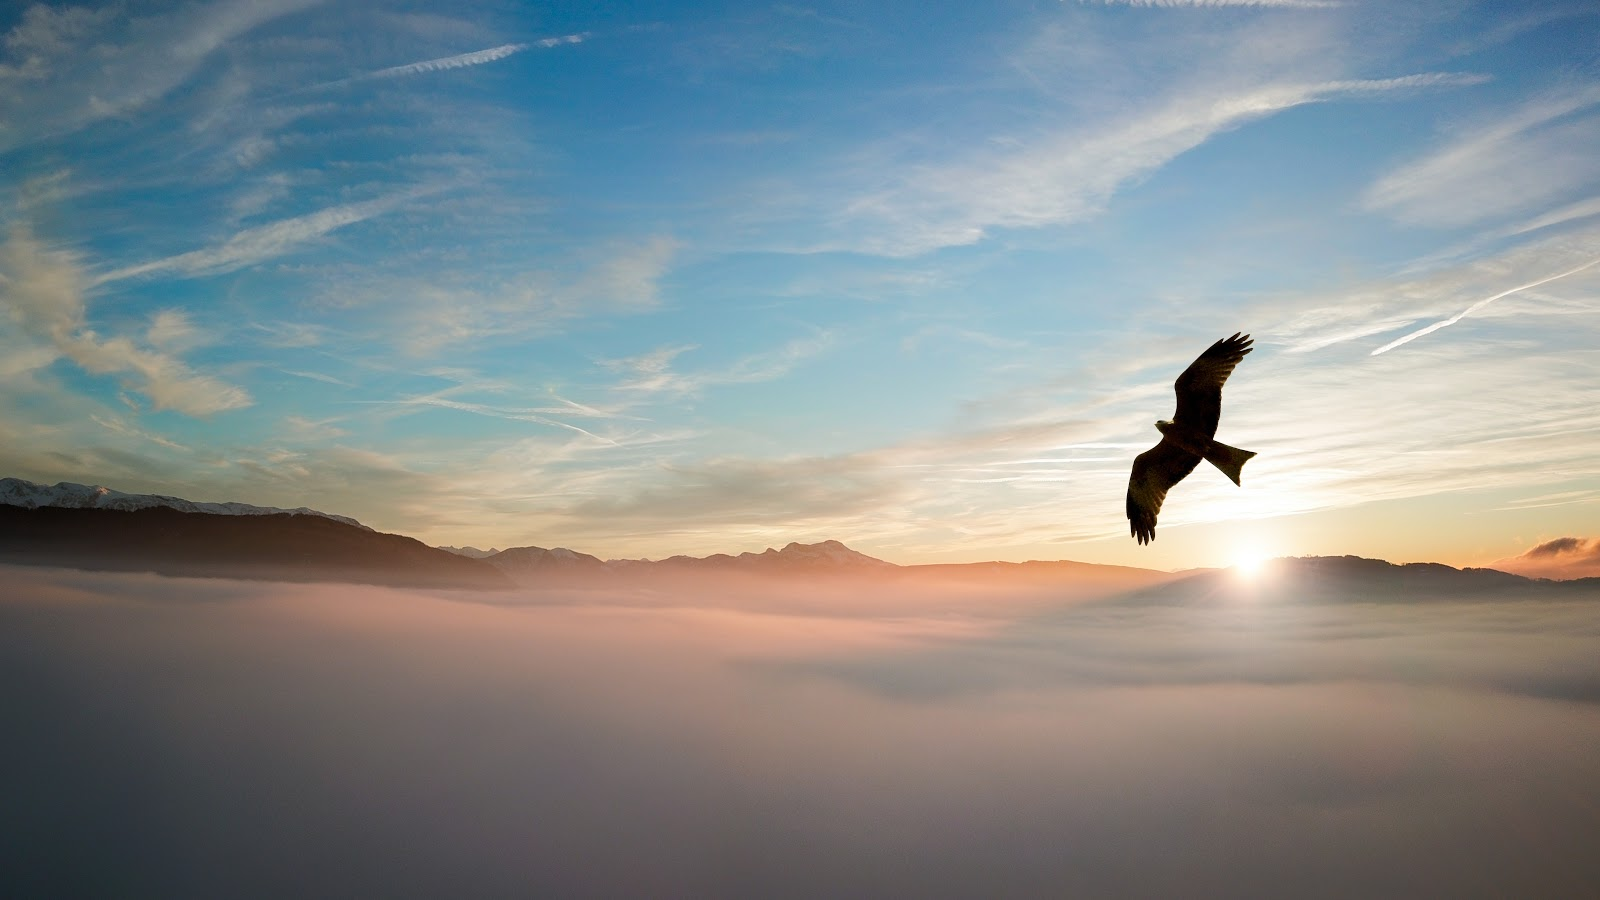 silhouette-of-bird-above-clouds-birds-pictures